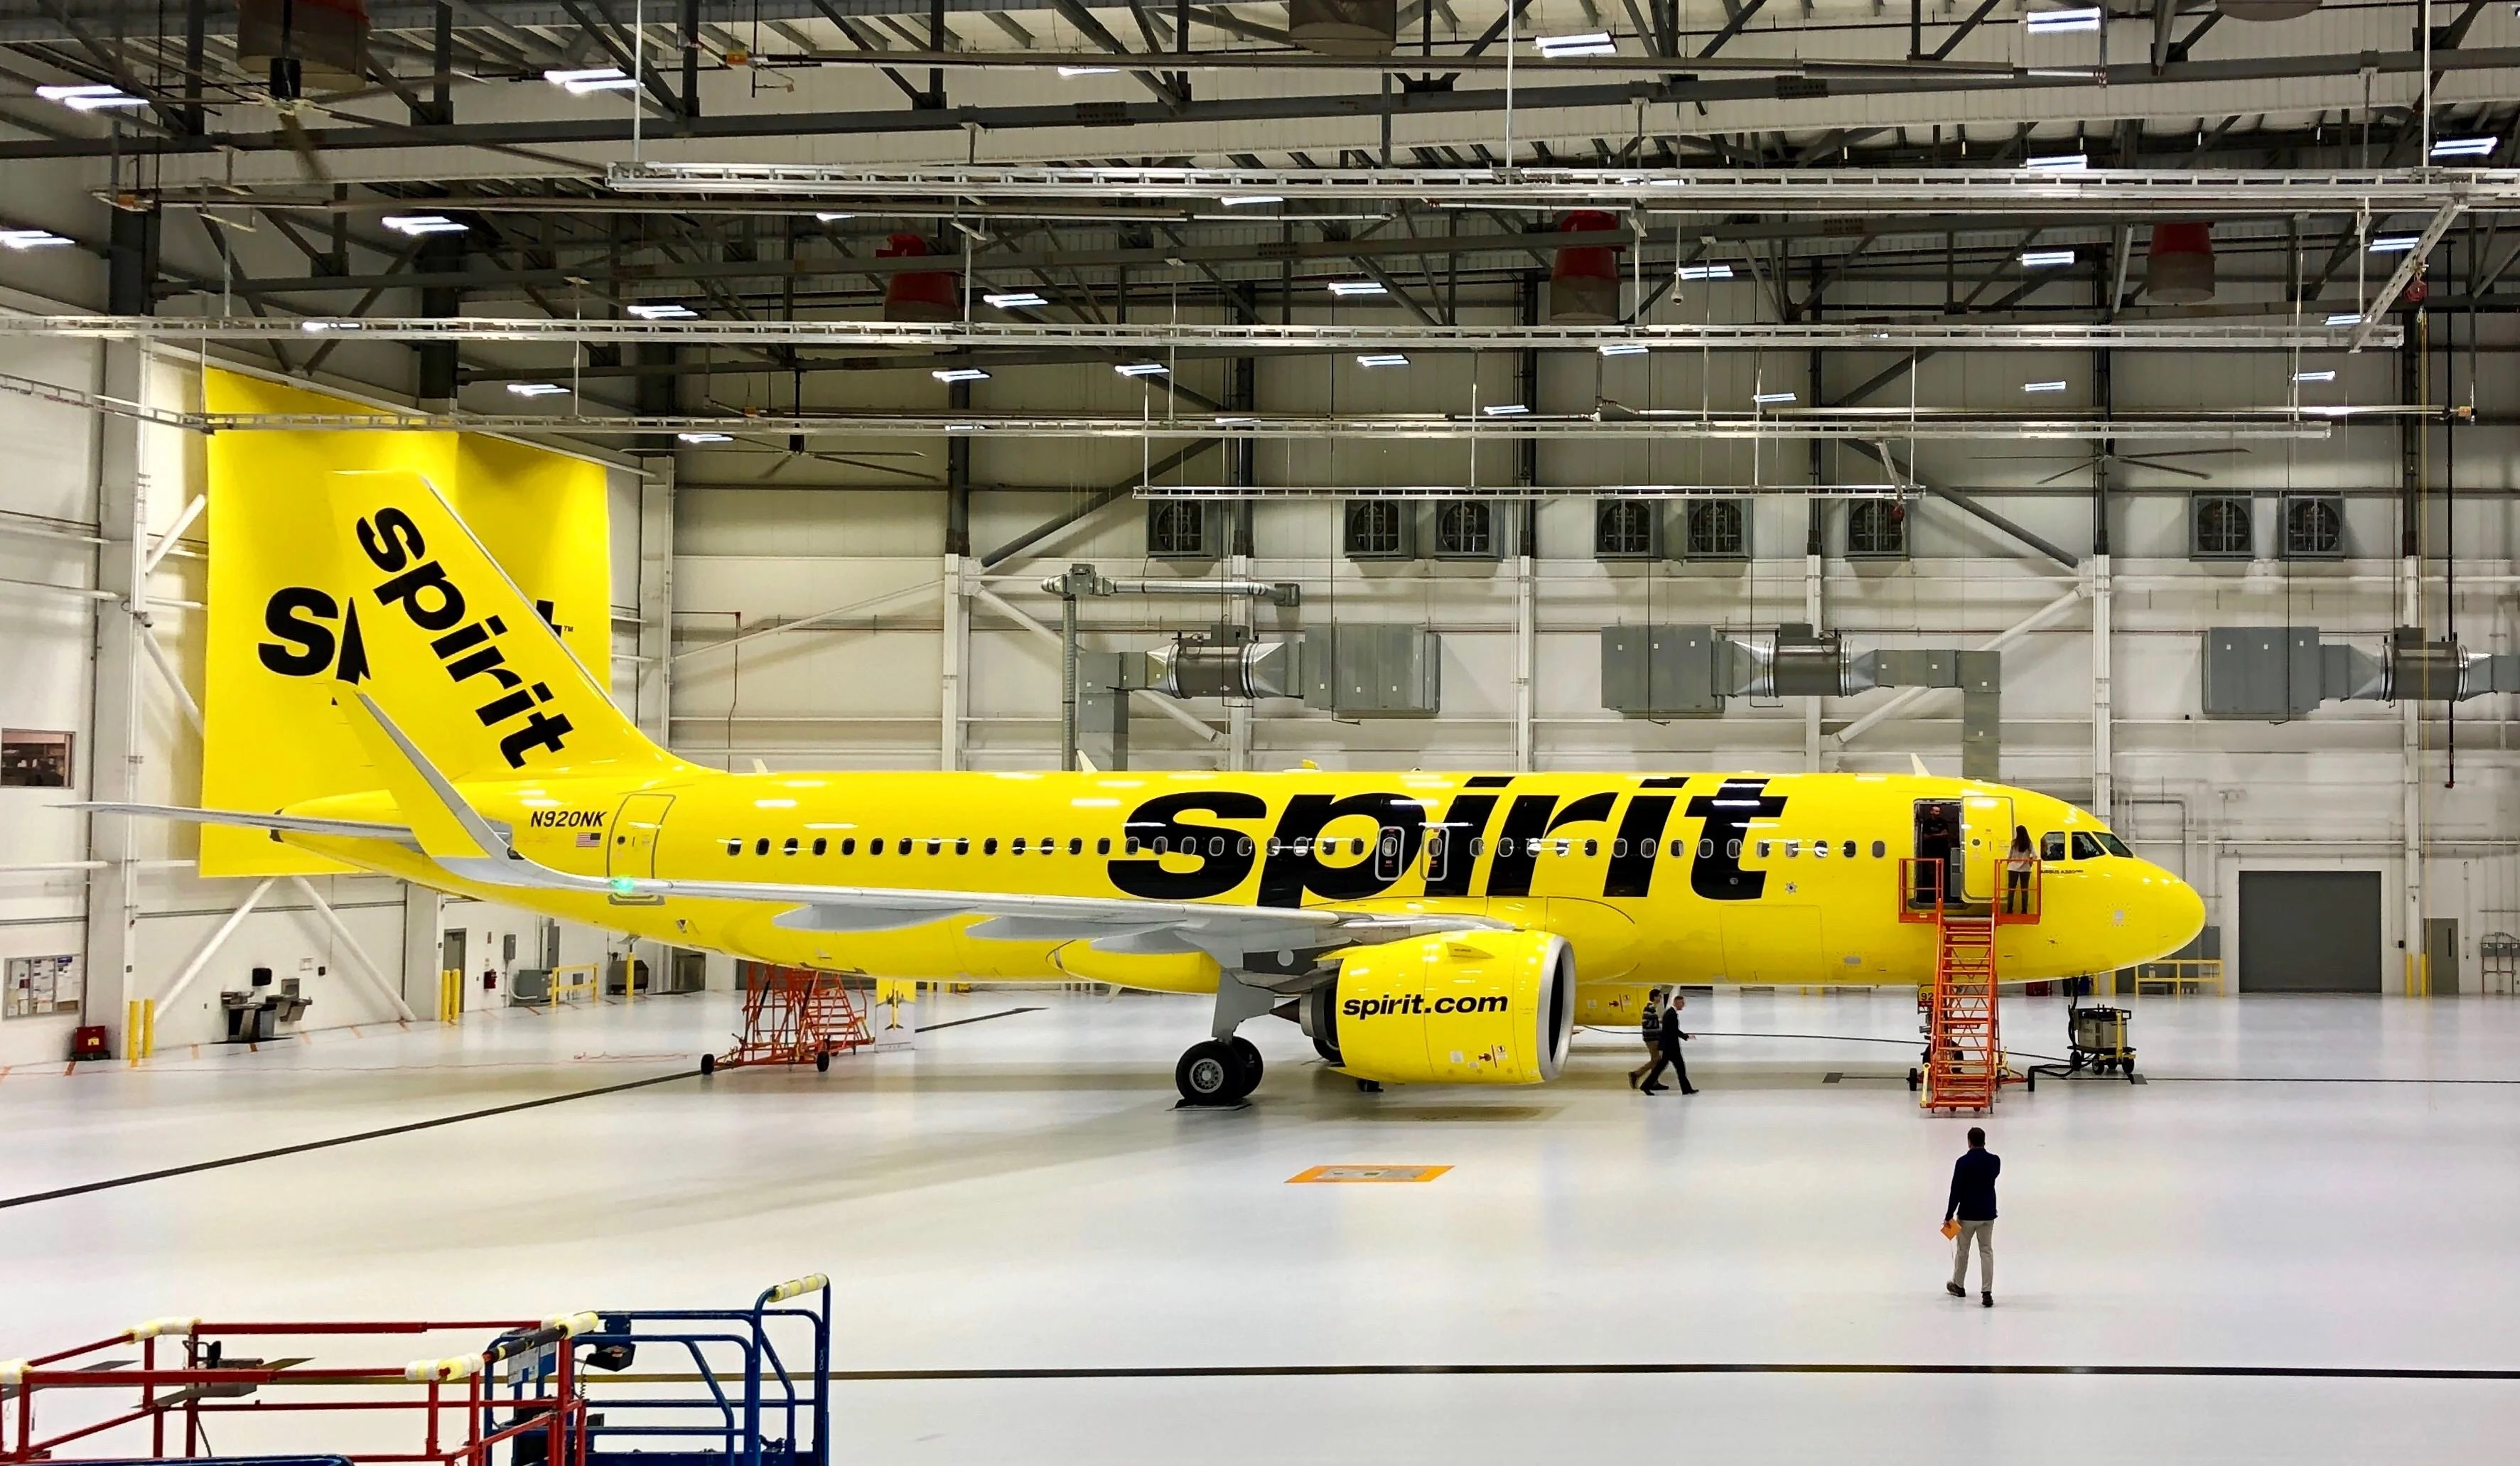 Spirit Airlines adds new California route from Fort Lauderdale hub